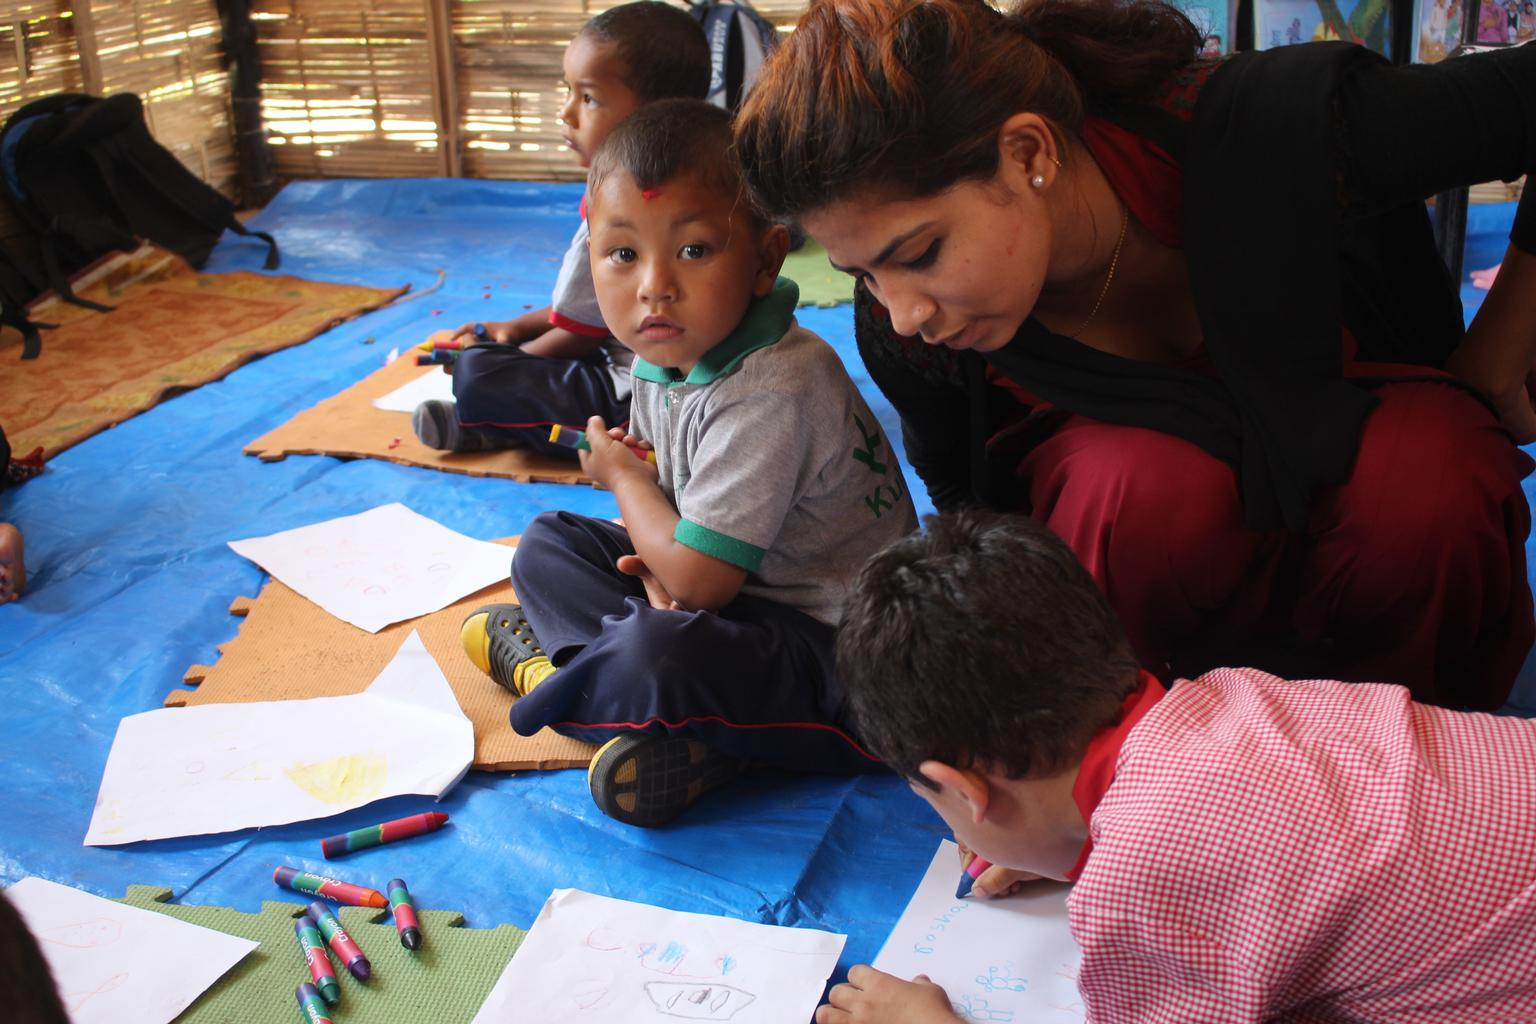 A facilitator helps one of several young boys who are drawing and colouring during an early childhood development activity in a UNICEF-supported temporary learning centre.